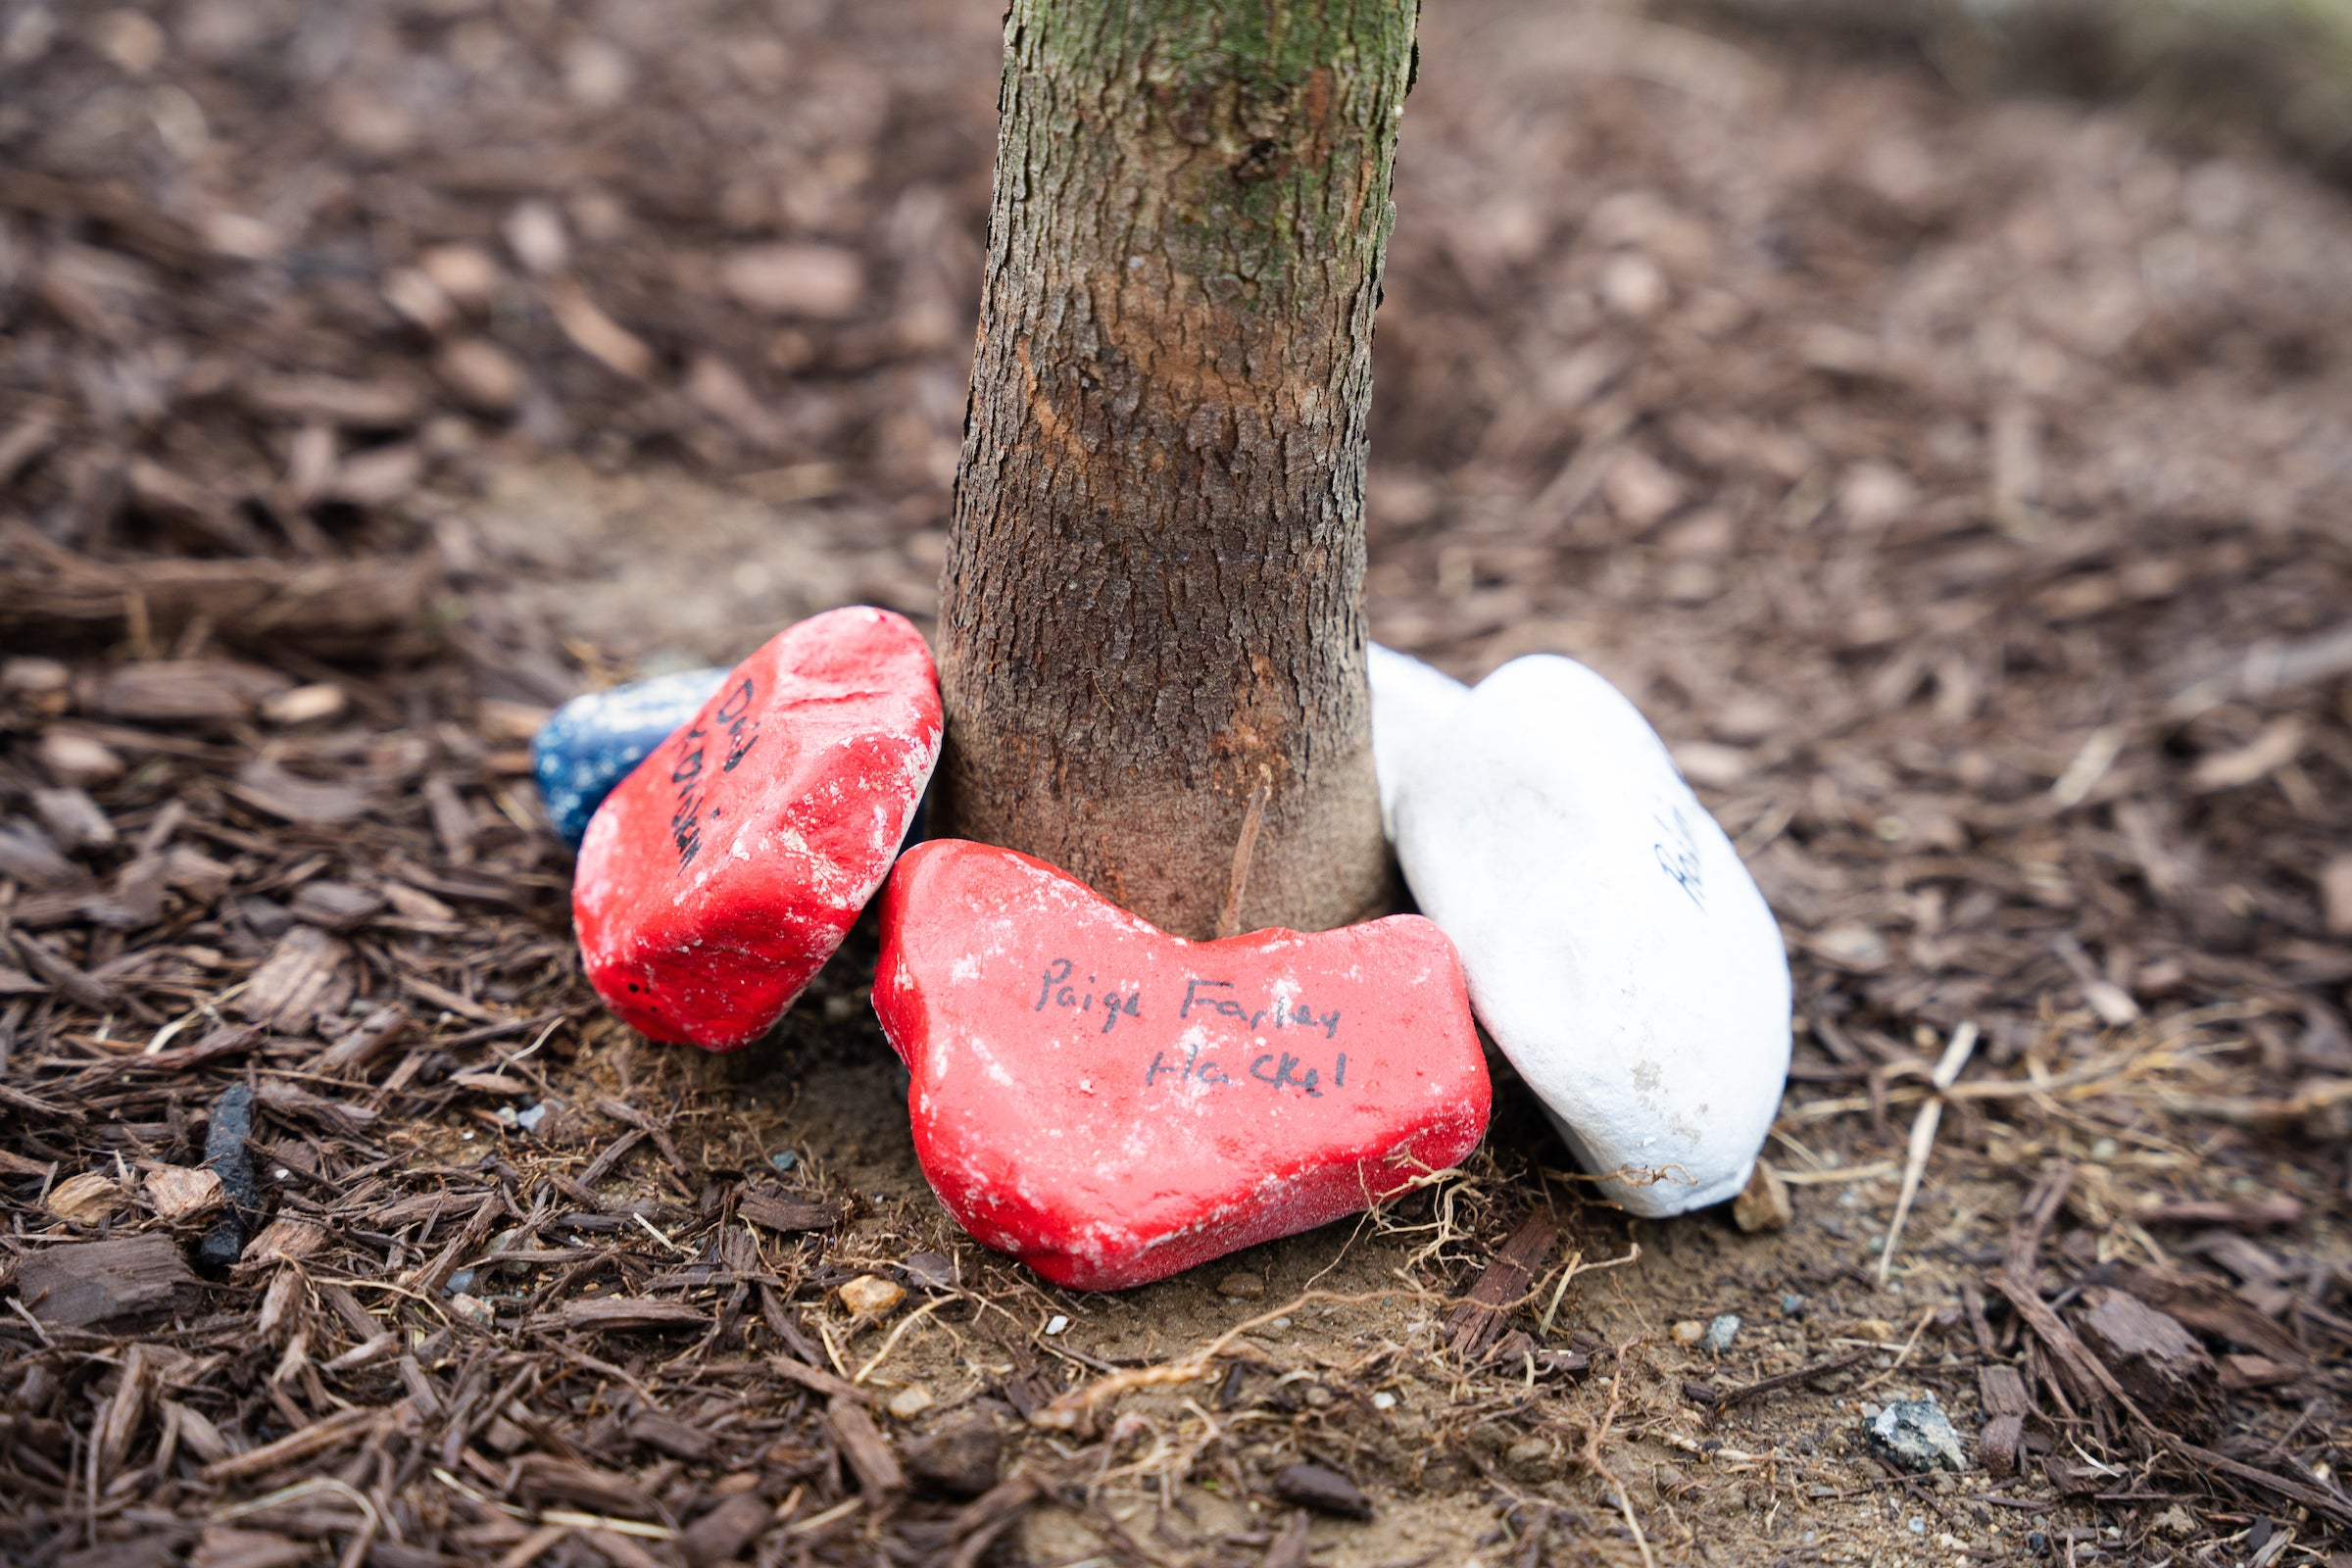 memory rocks for 9/11 victims